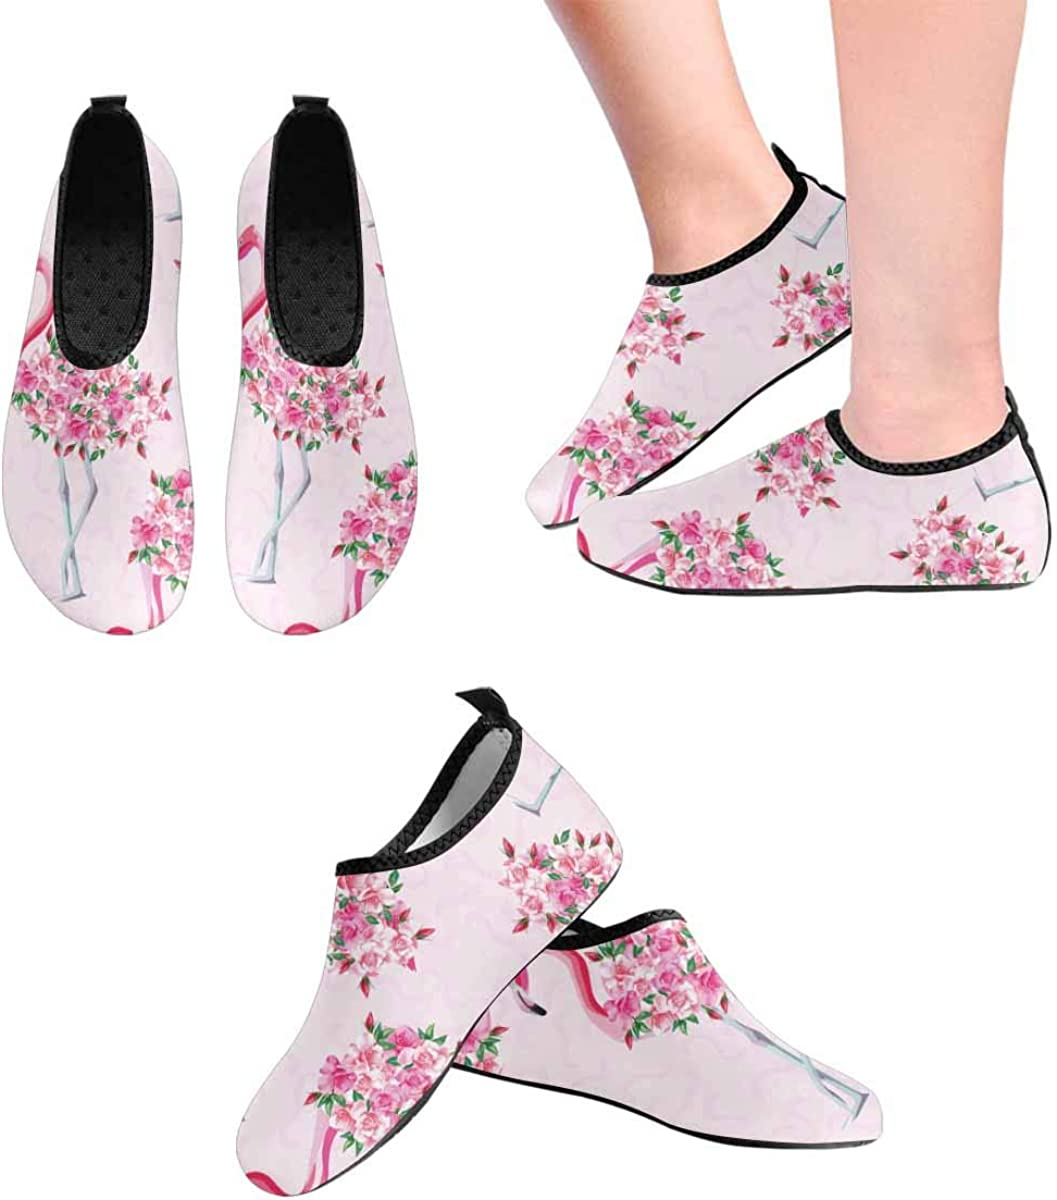 INTERESTPRINT Mens Water Shoes Pink Flamingo Roses Beach Swim Shoes Quick Dry Aqua Socks Pool Shoes